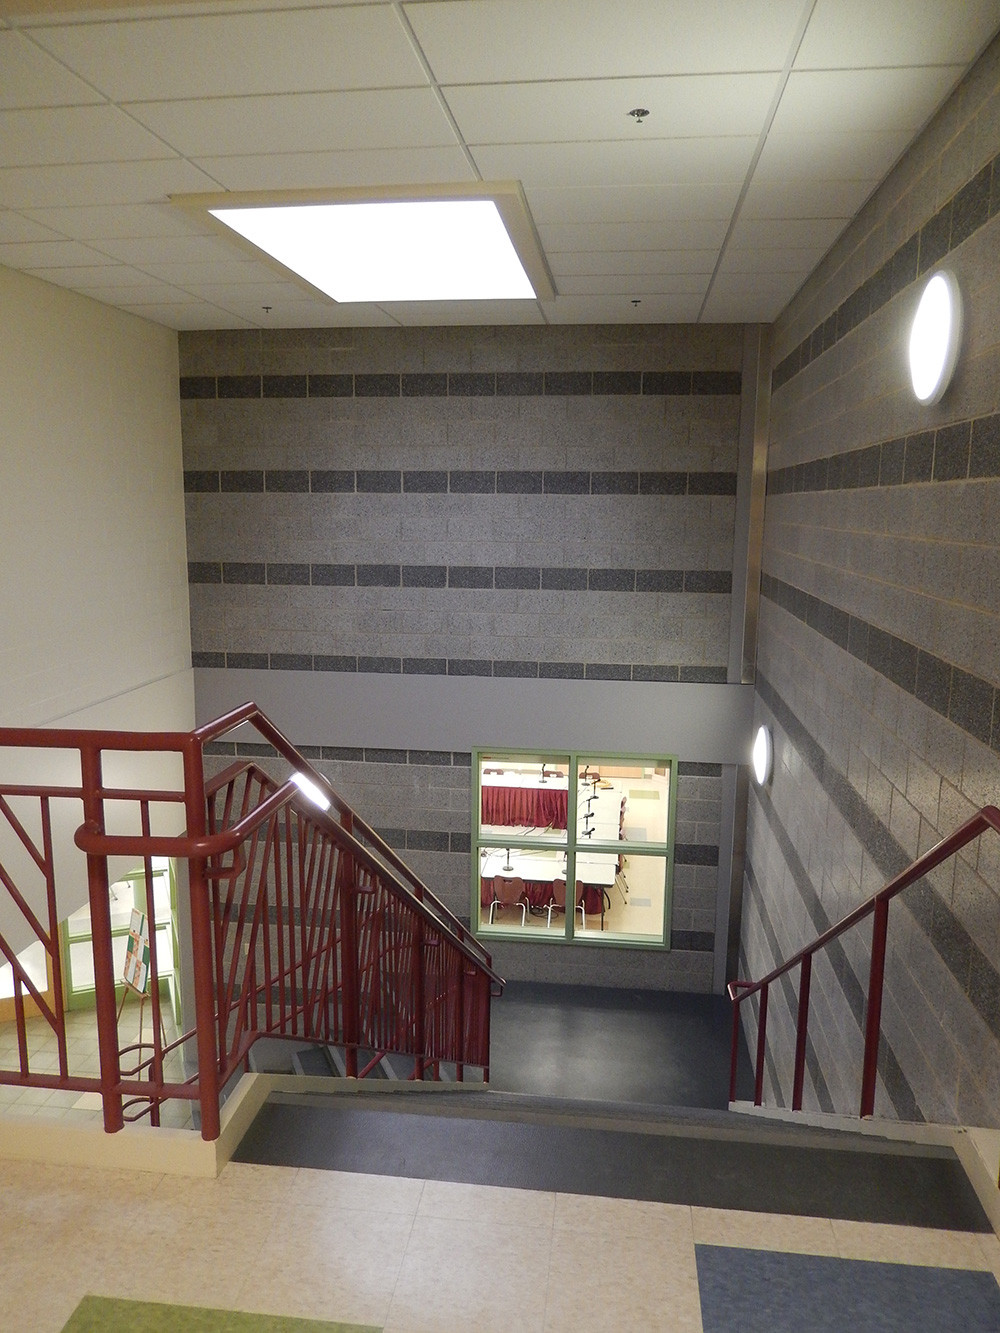 Lebanon Middle School, Banwell Architects